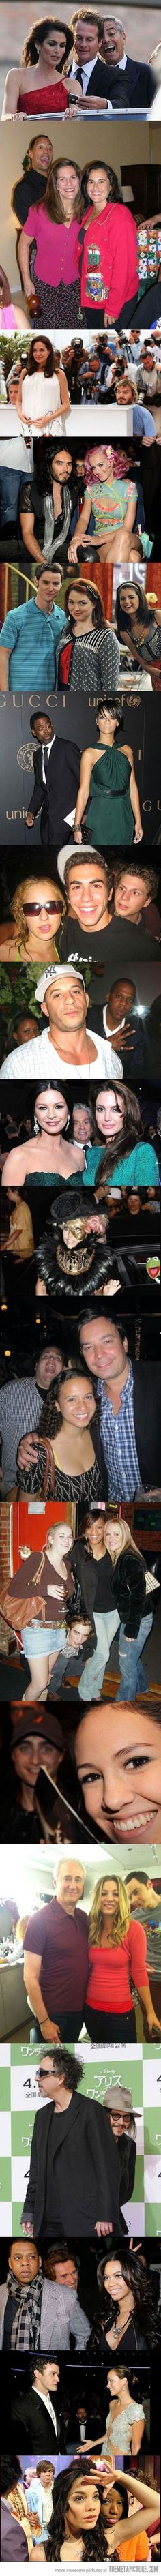 I don't know why I love photobombs so much. :D    Celebrity photobombs